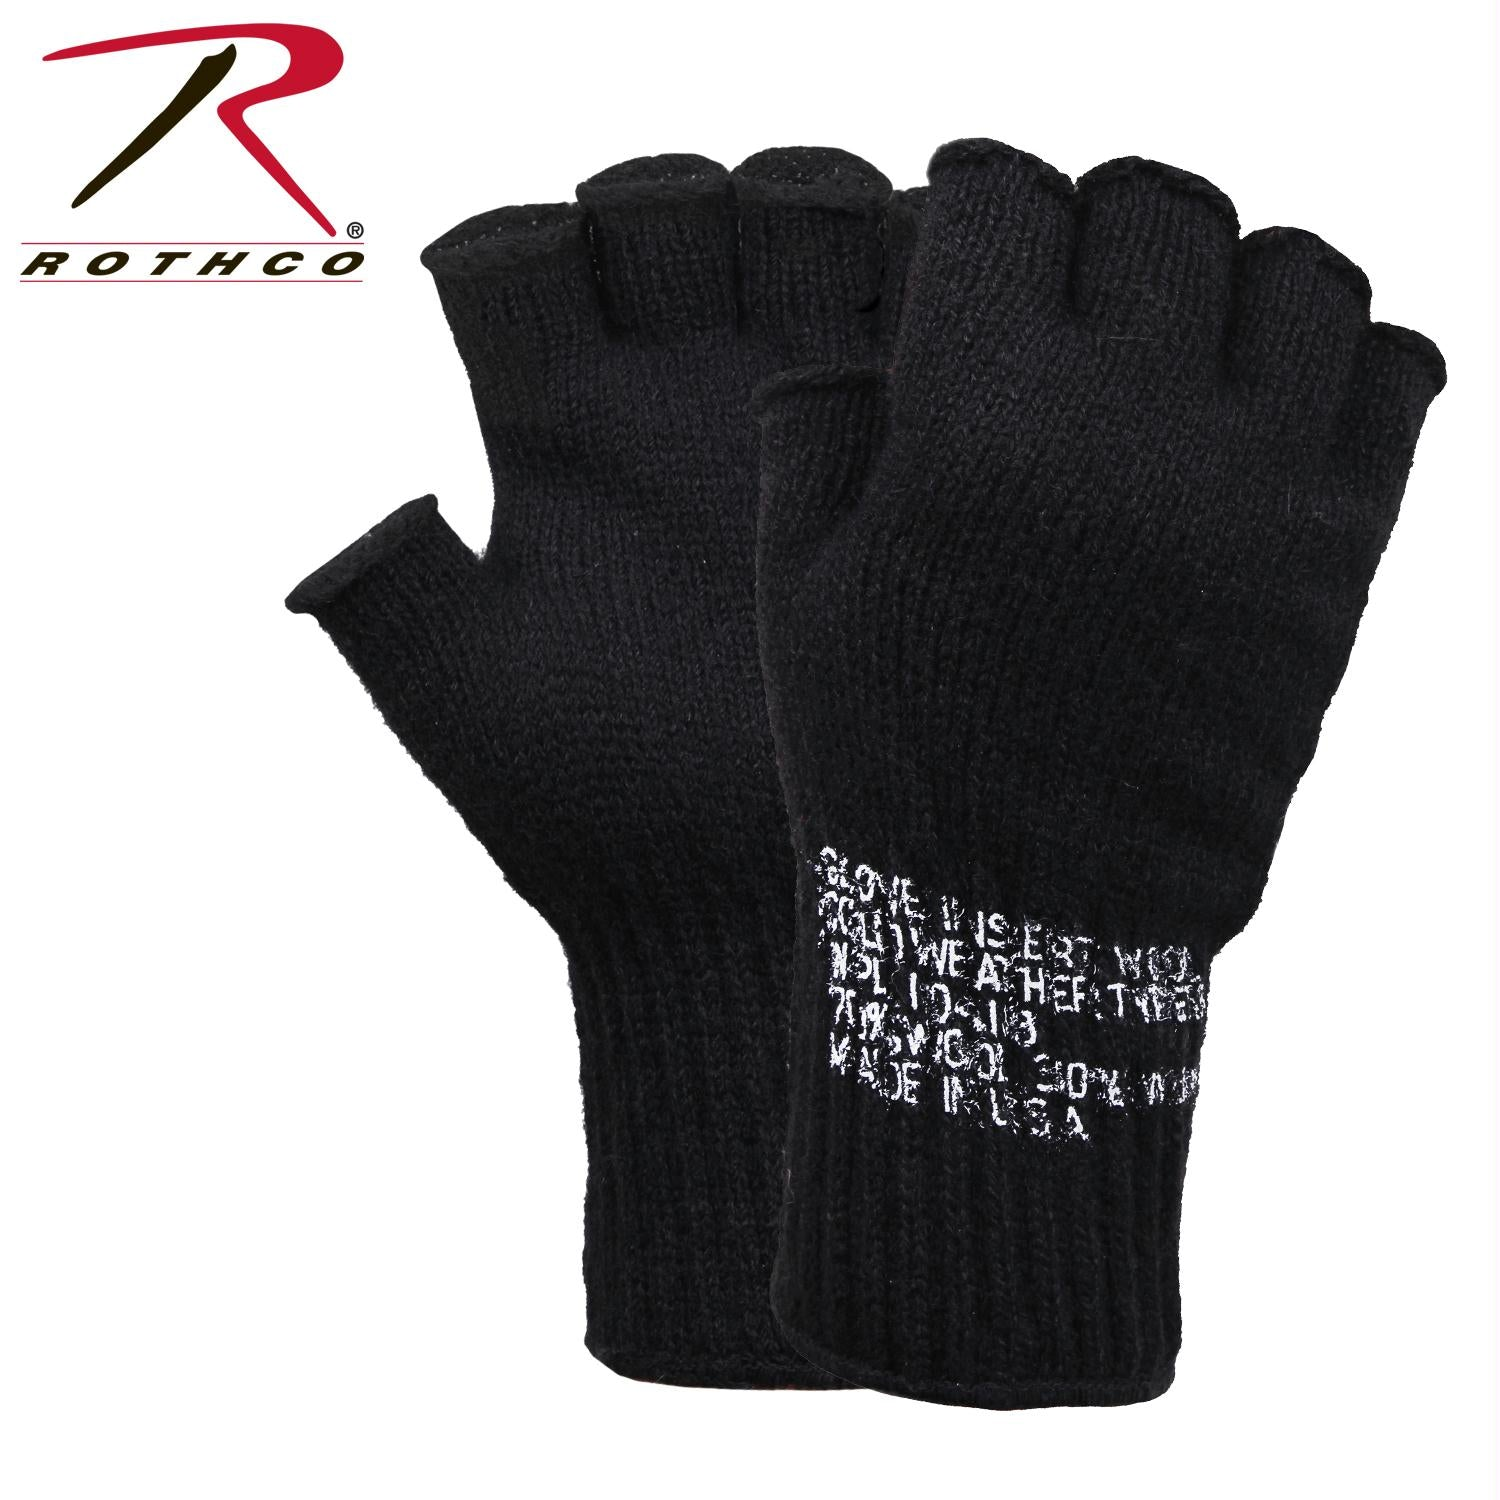 Rothco Fingerless Wool Gloves - Black